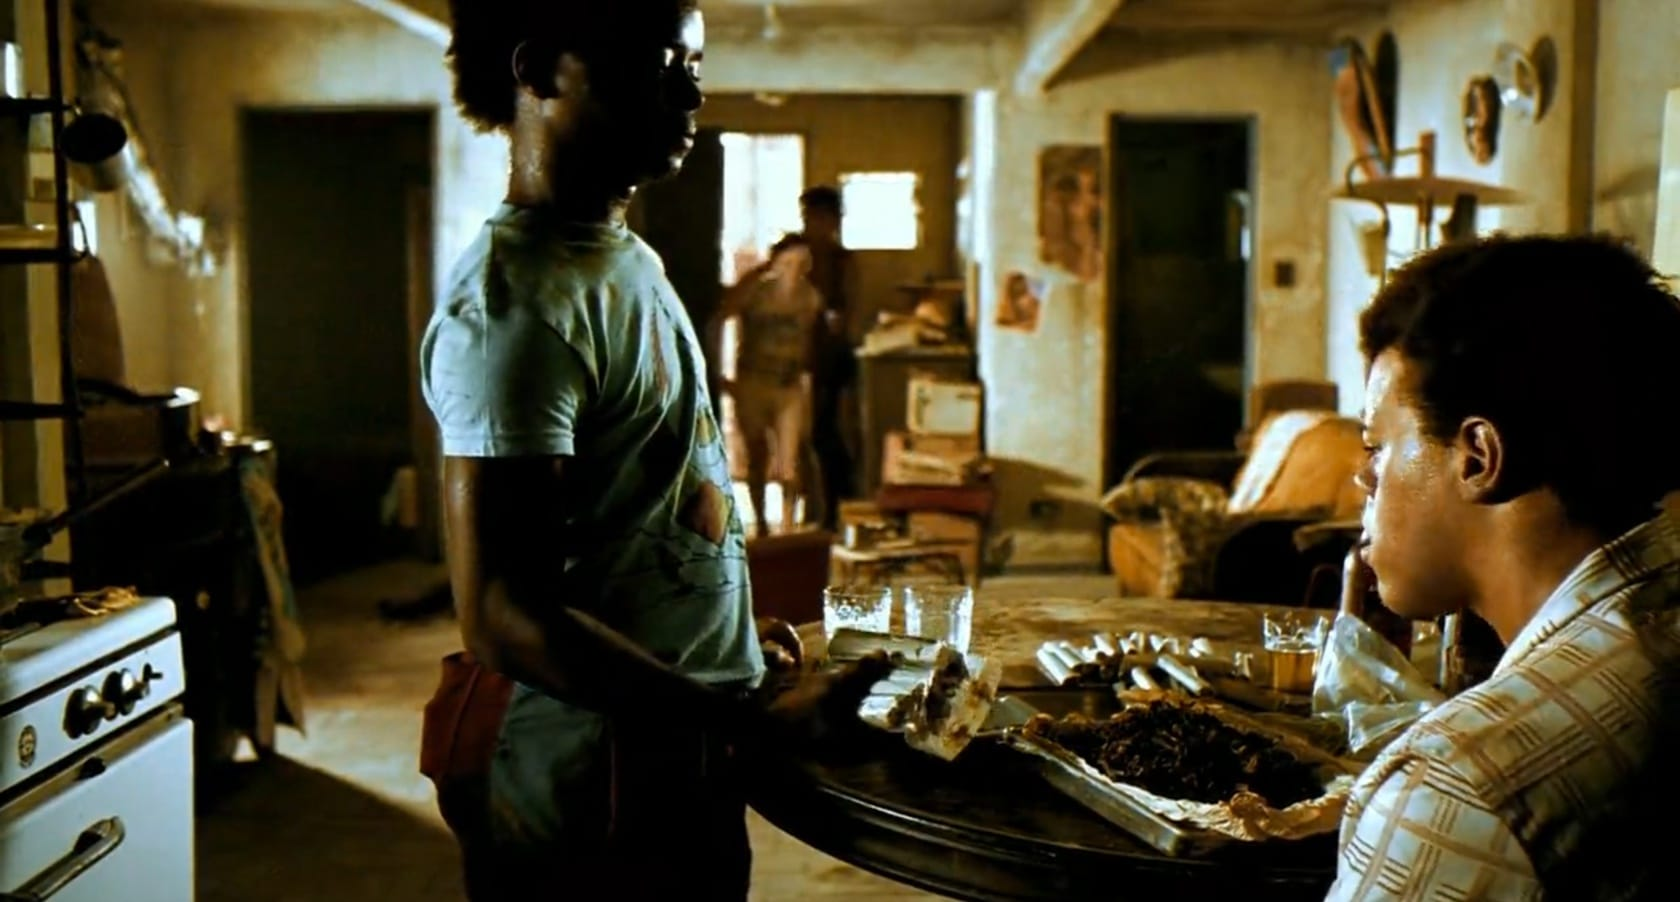 City of God Scene 3